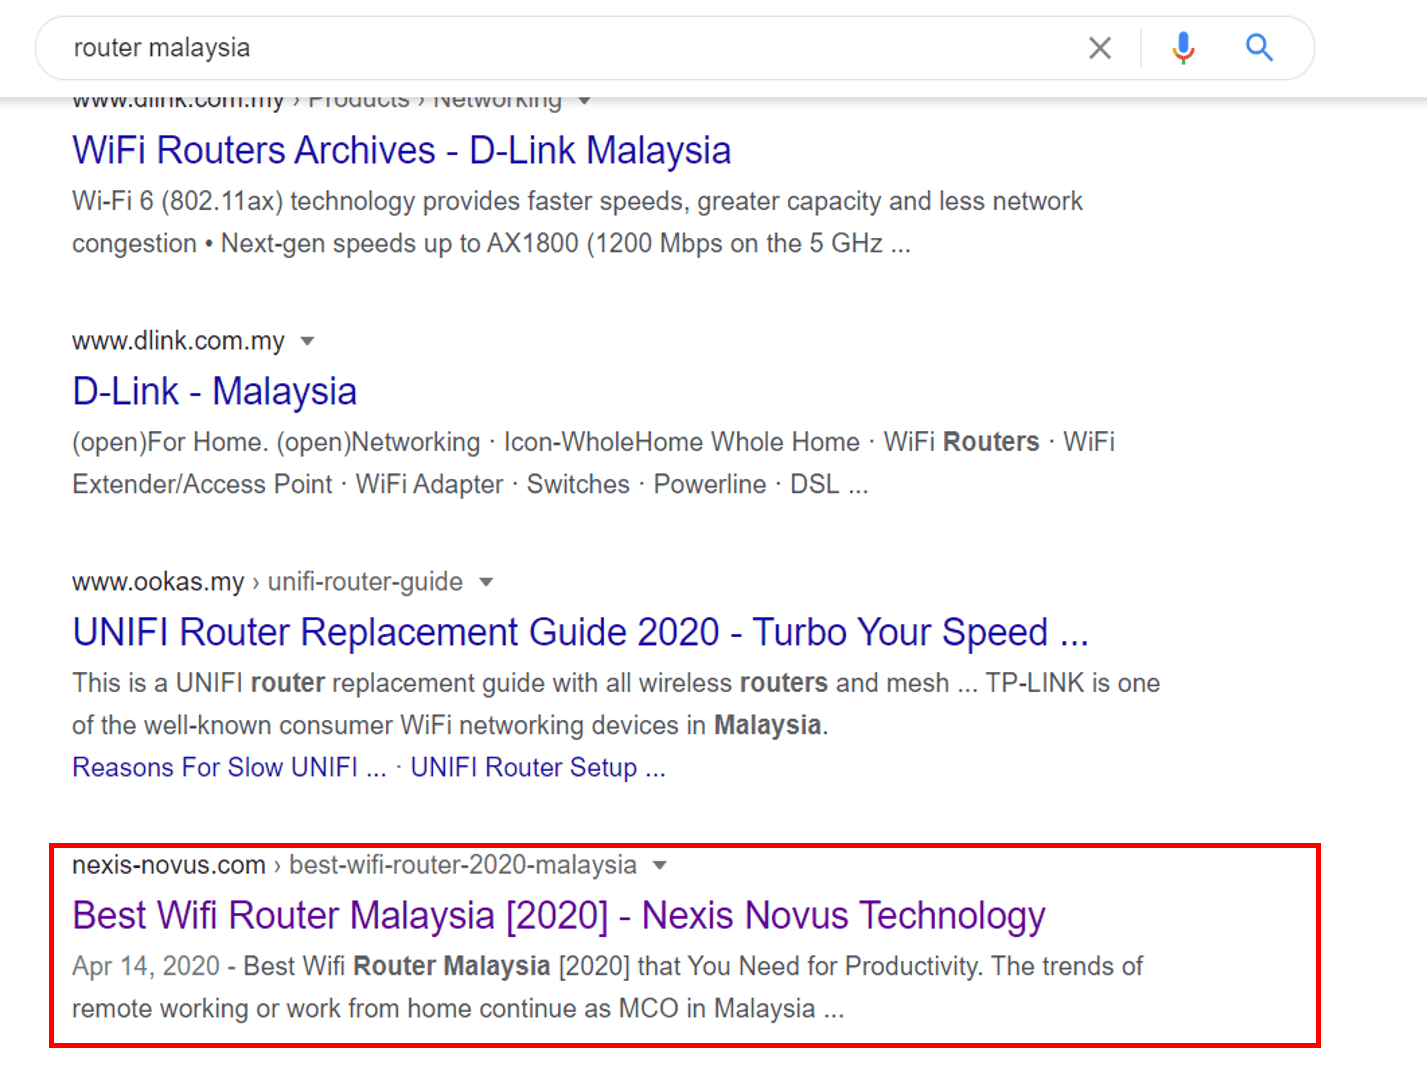 Router Malaysia Rank First Page by Nexis Novus